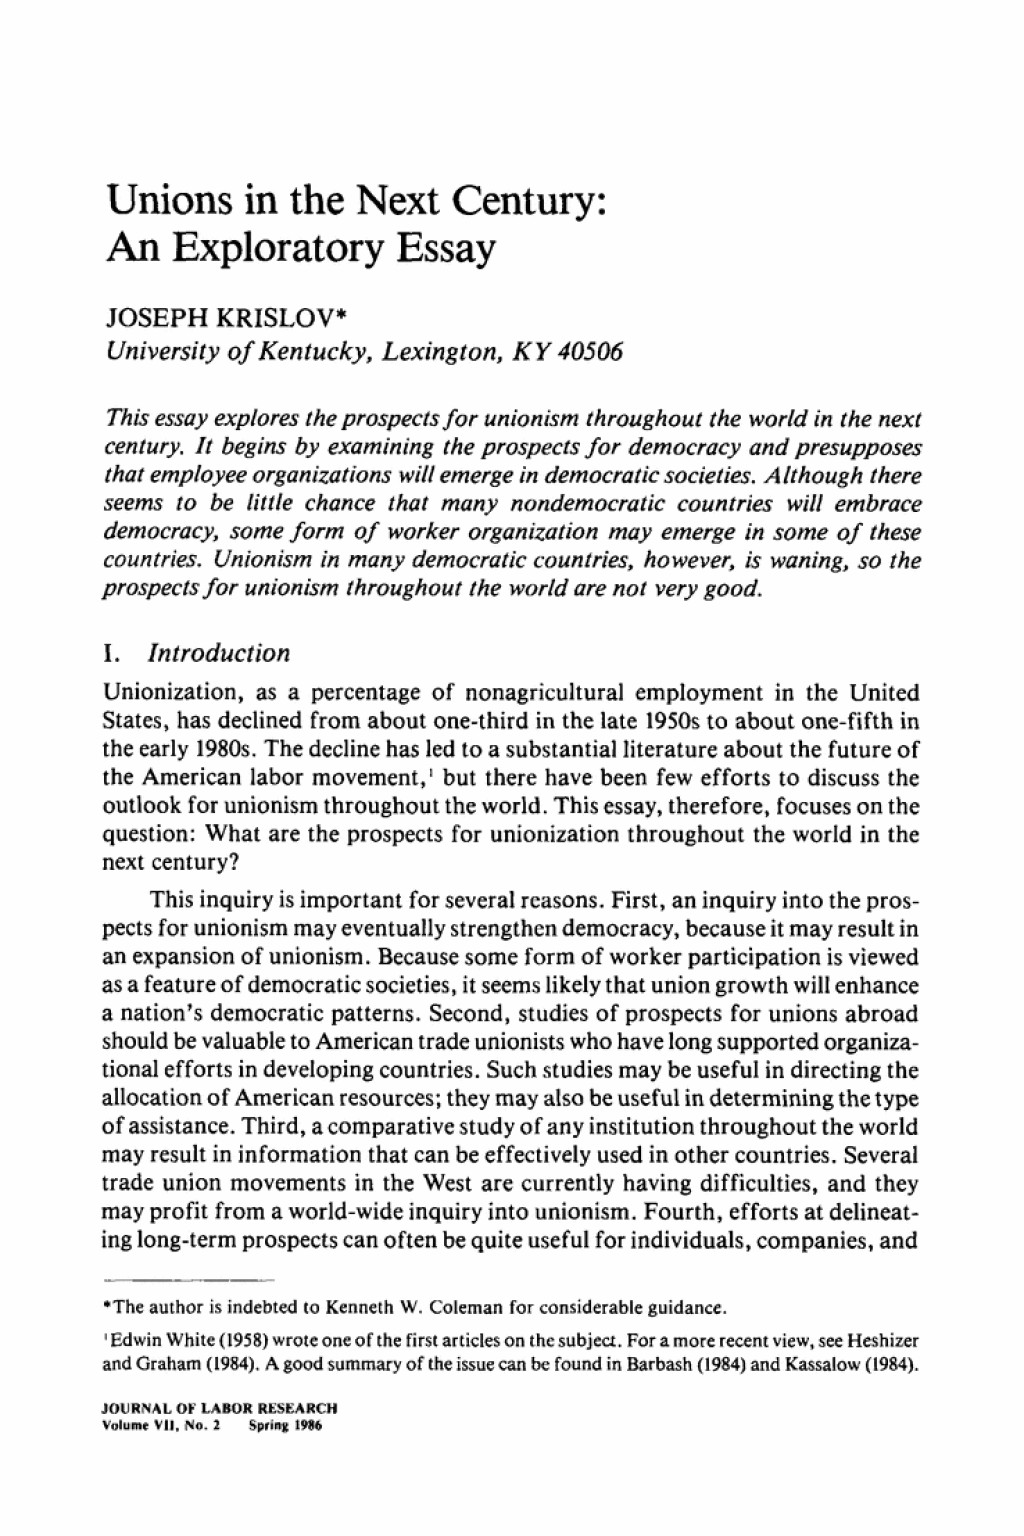 001 Exploratory Essay Example Unions In The Next Century An Springer L Stunning Thesis Fun Topics Sample Pdf Large